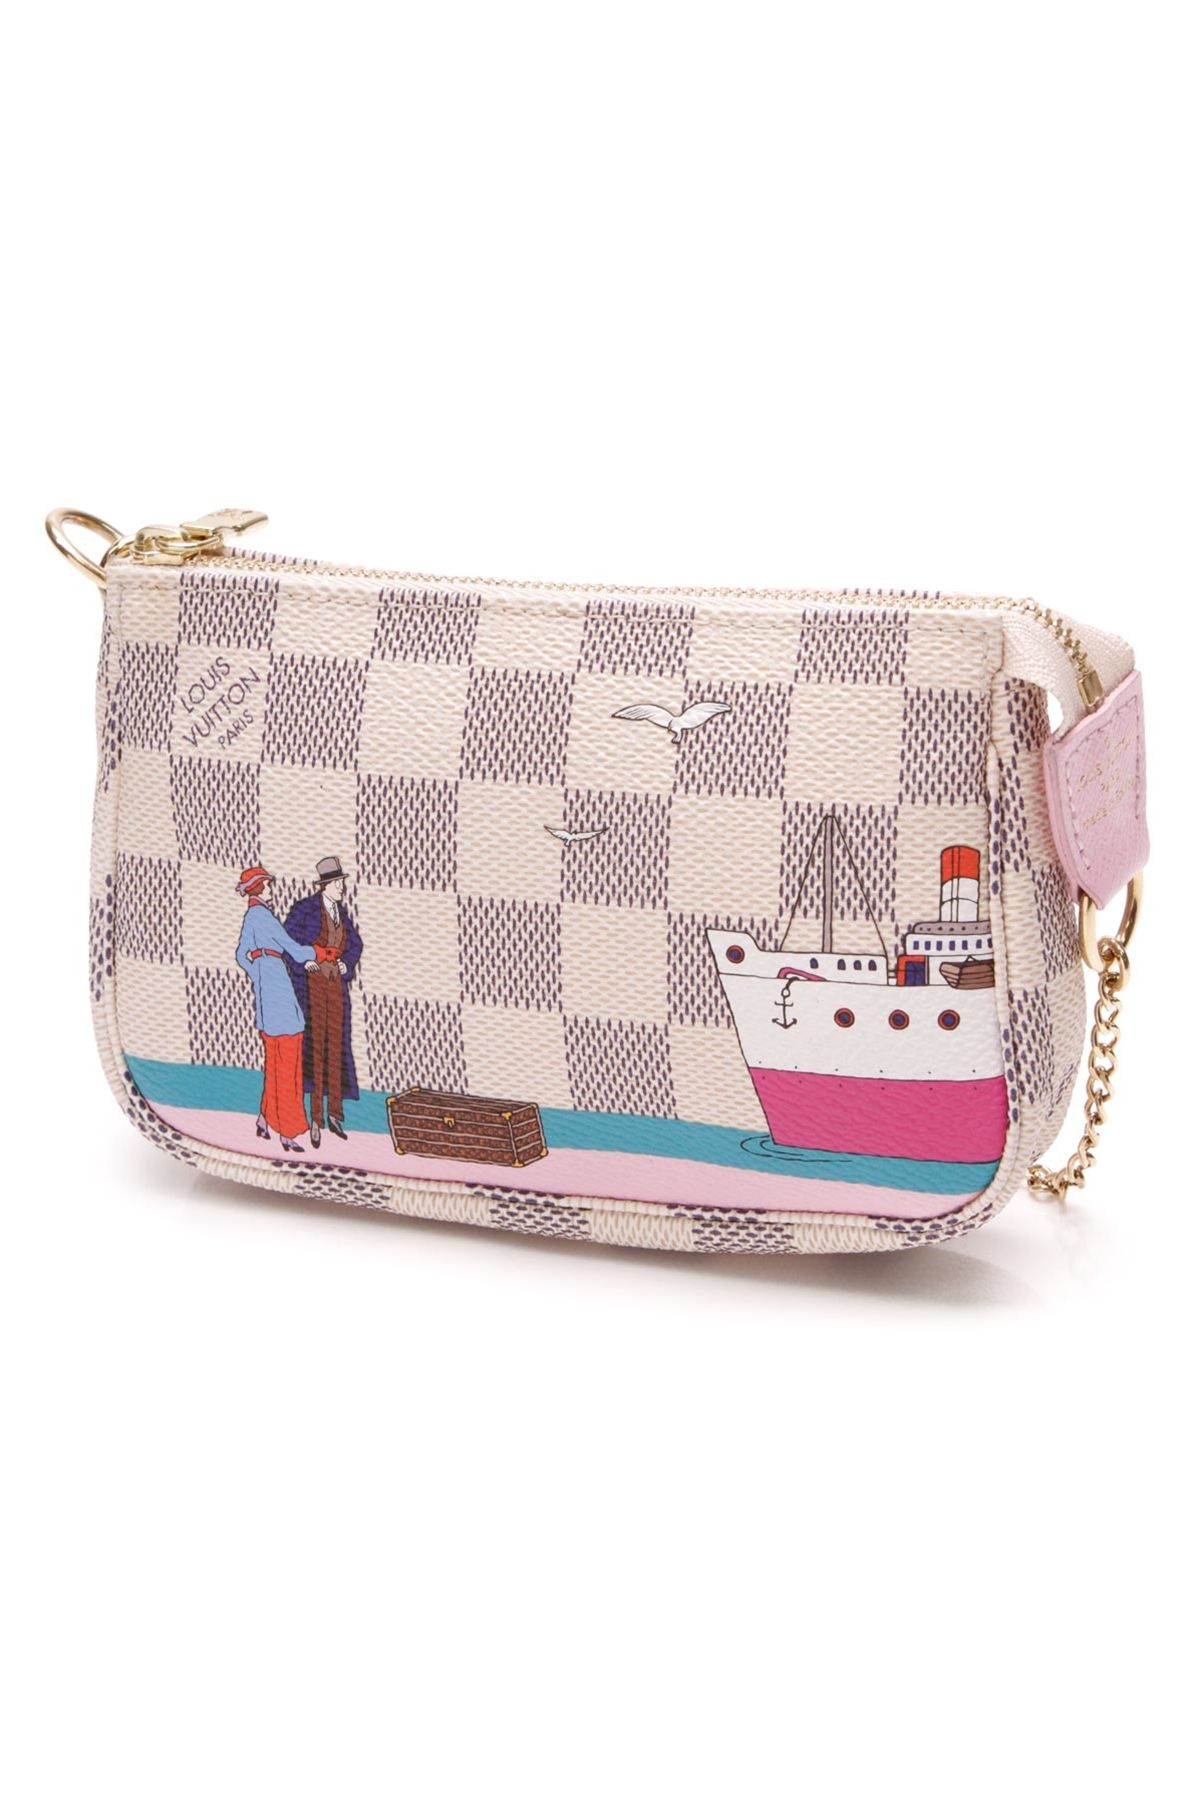 8280d63af876 Carry those small necessities in style with this authentic Louis Vuitton  limited edition Illustre Transatlantic Mini